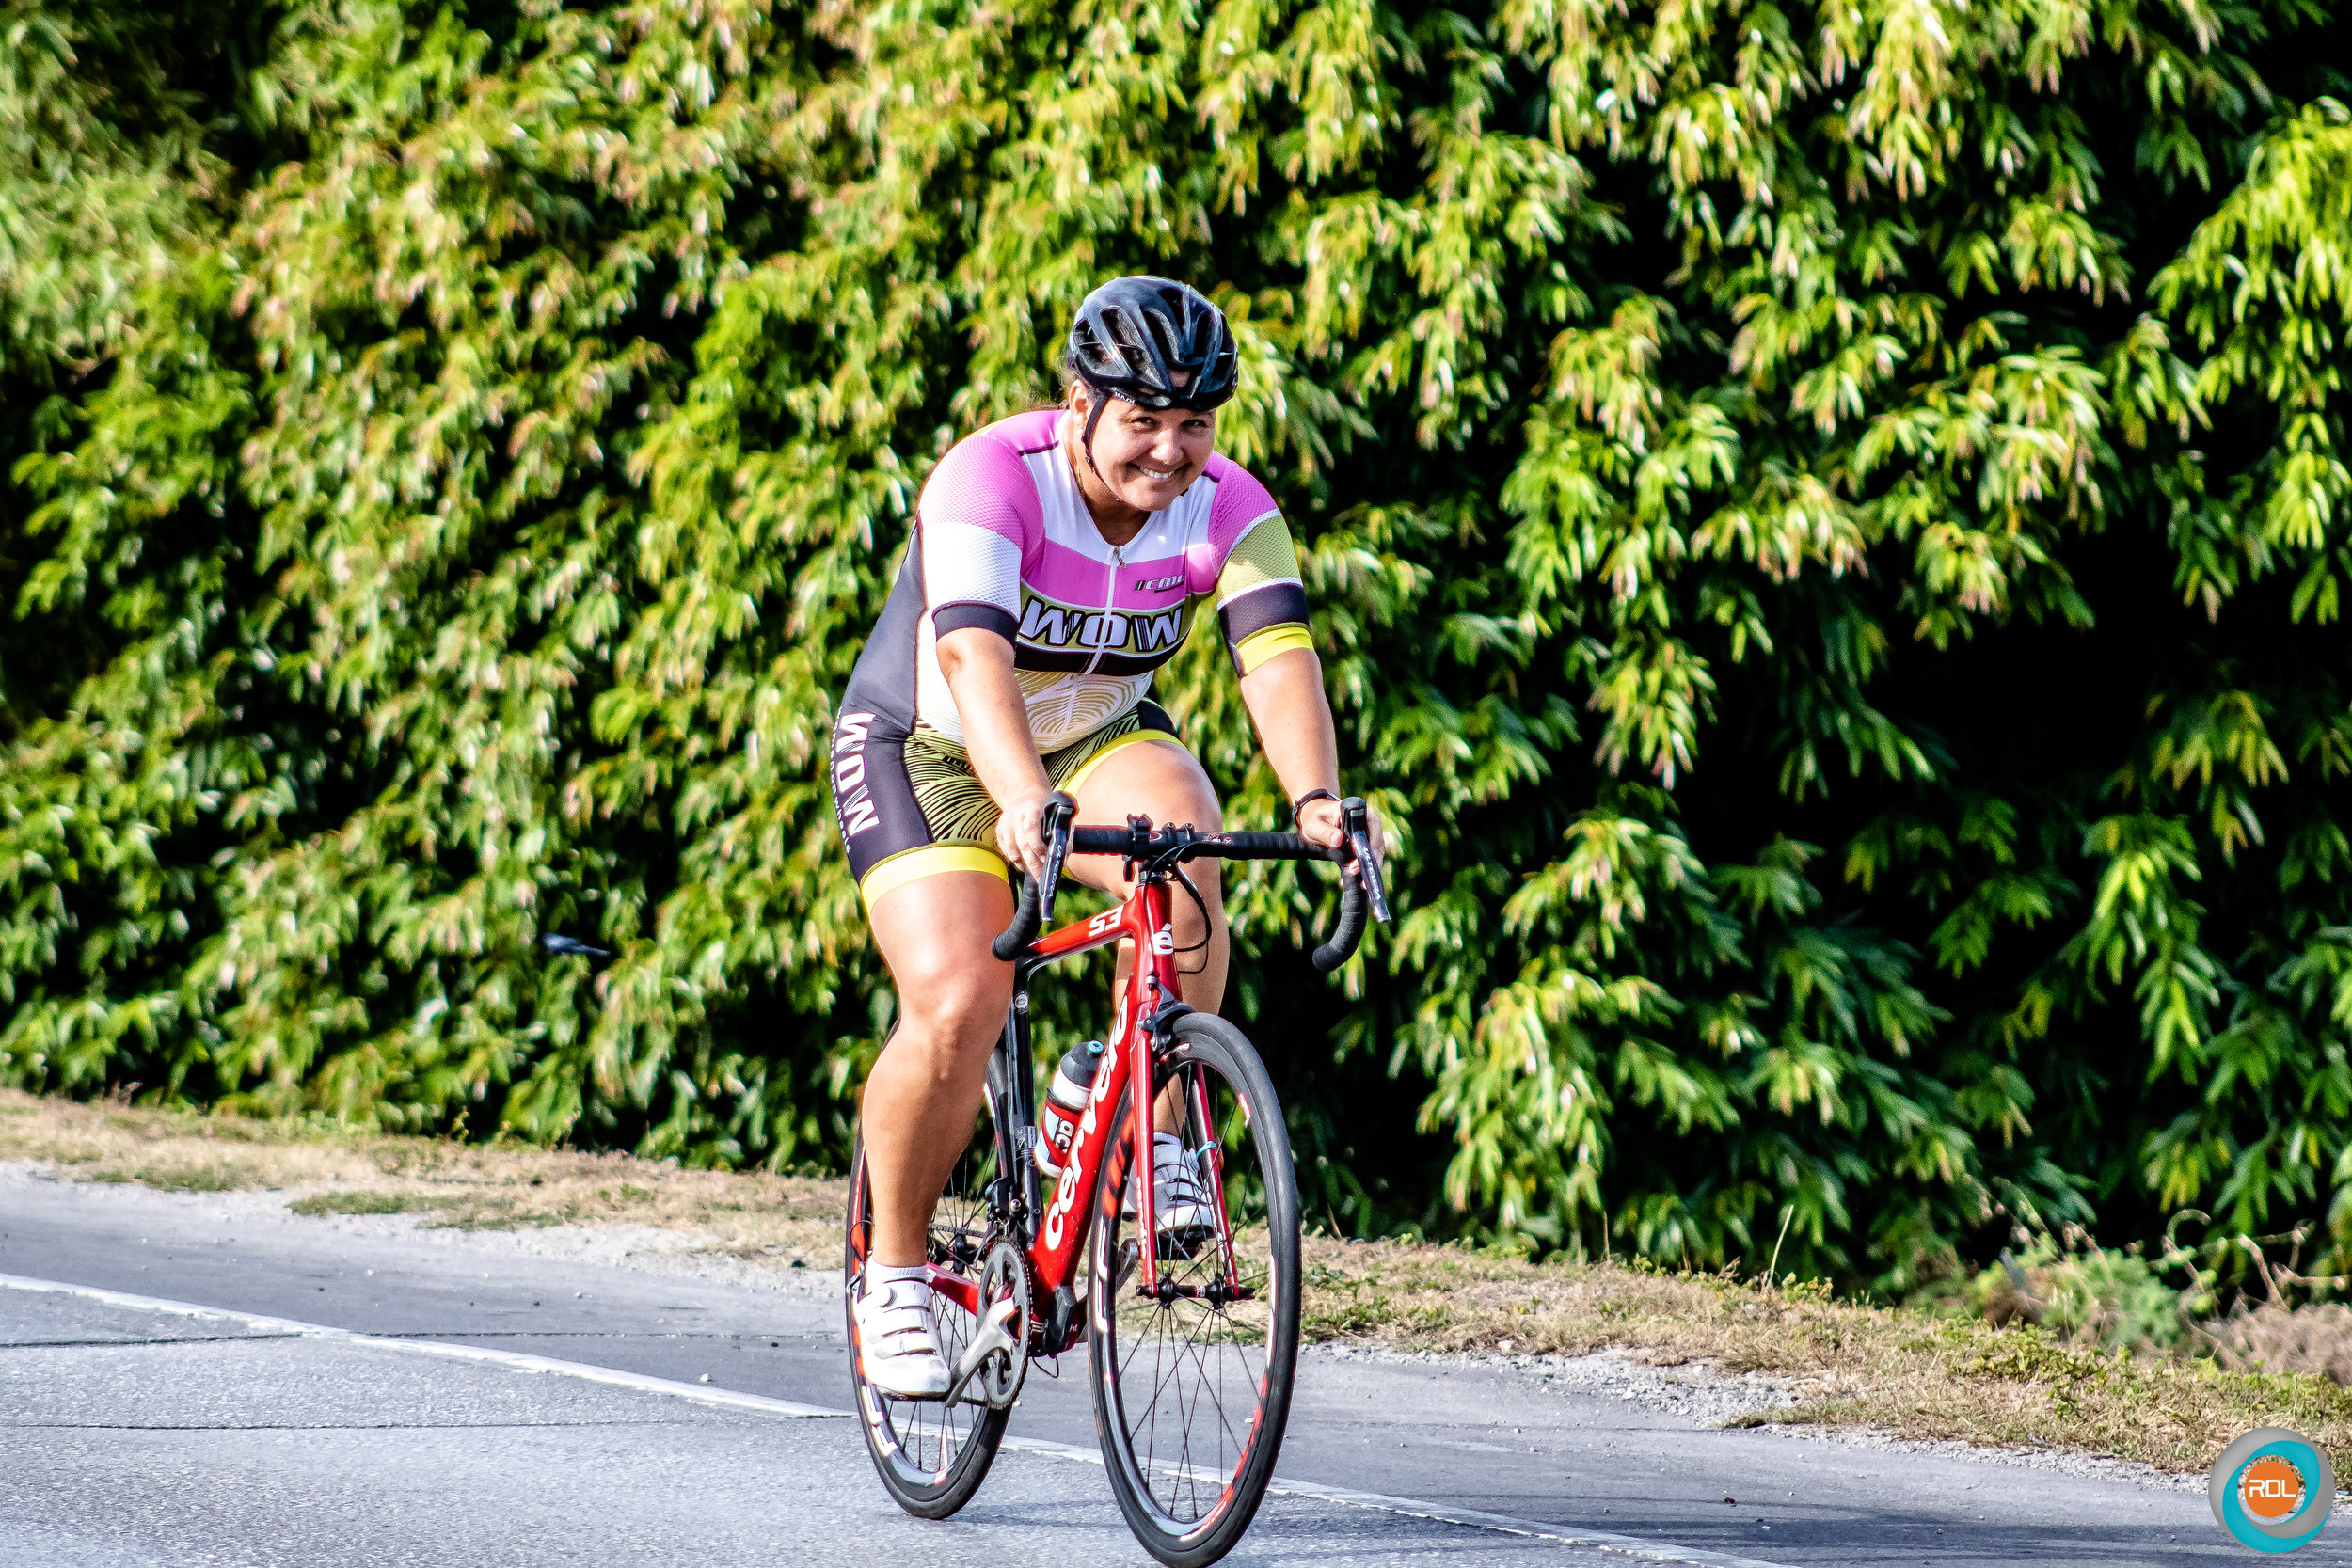 Carol Kelly won the female category with a time of one hour and twelve seconds. The female competitors were required to complete a 37.5 km race circuit.  Download ⤓